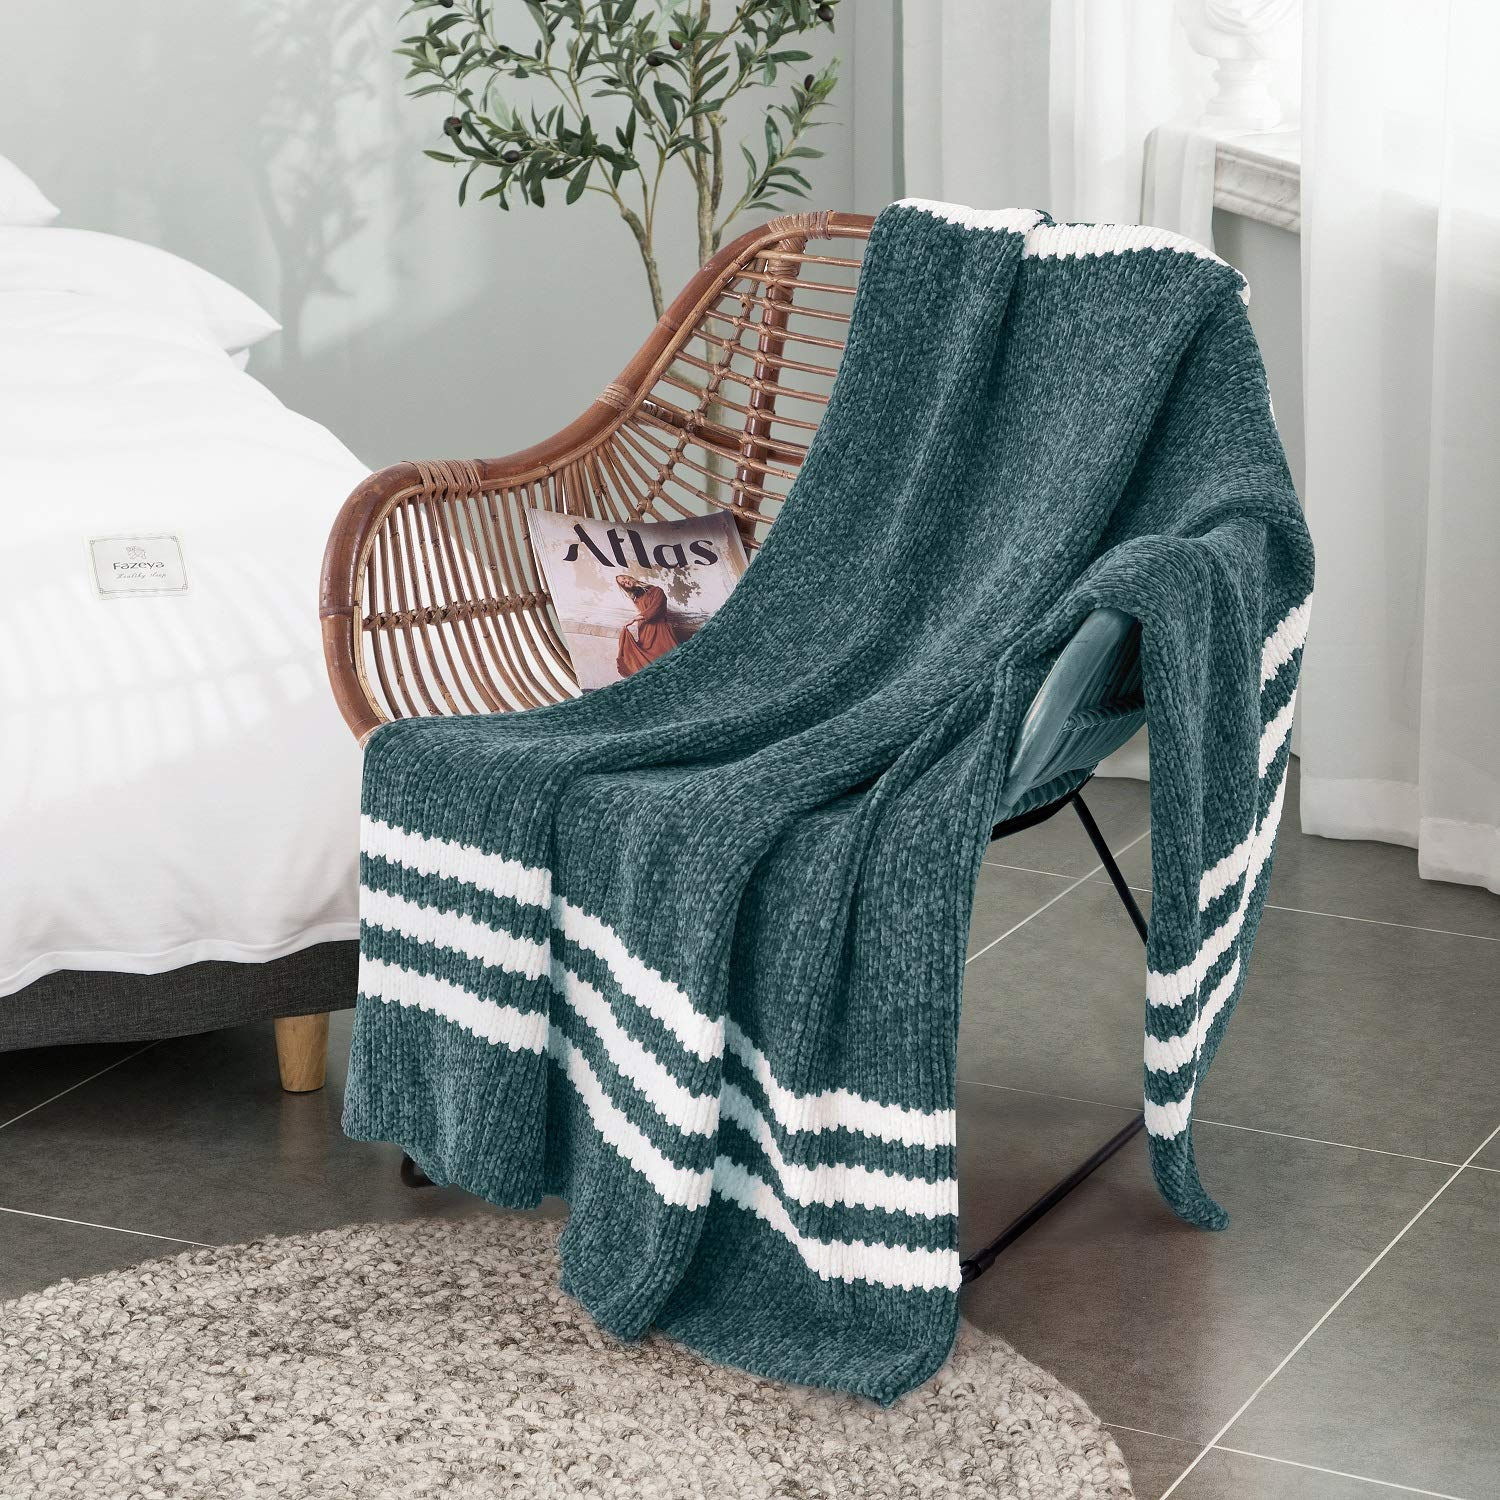 "ALPHA HOME Chenille Throw Blanket - Ultra Soft - 50"" x 60"", Teal - for Sofa, Couch, Bed Teal"